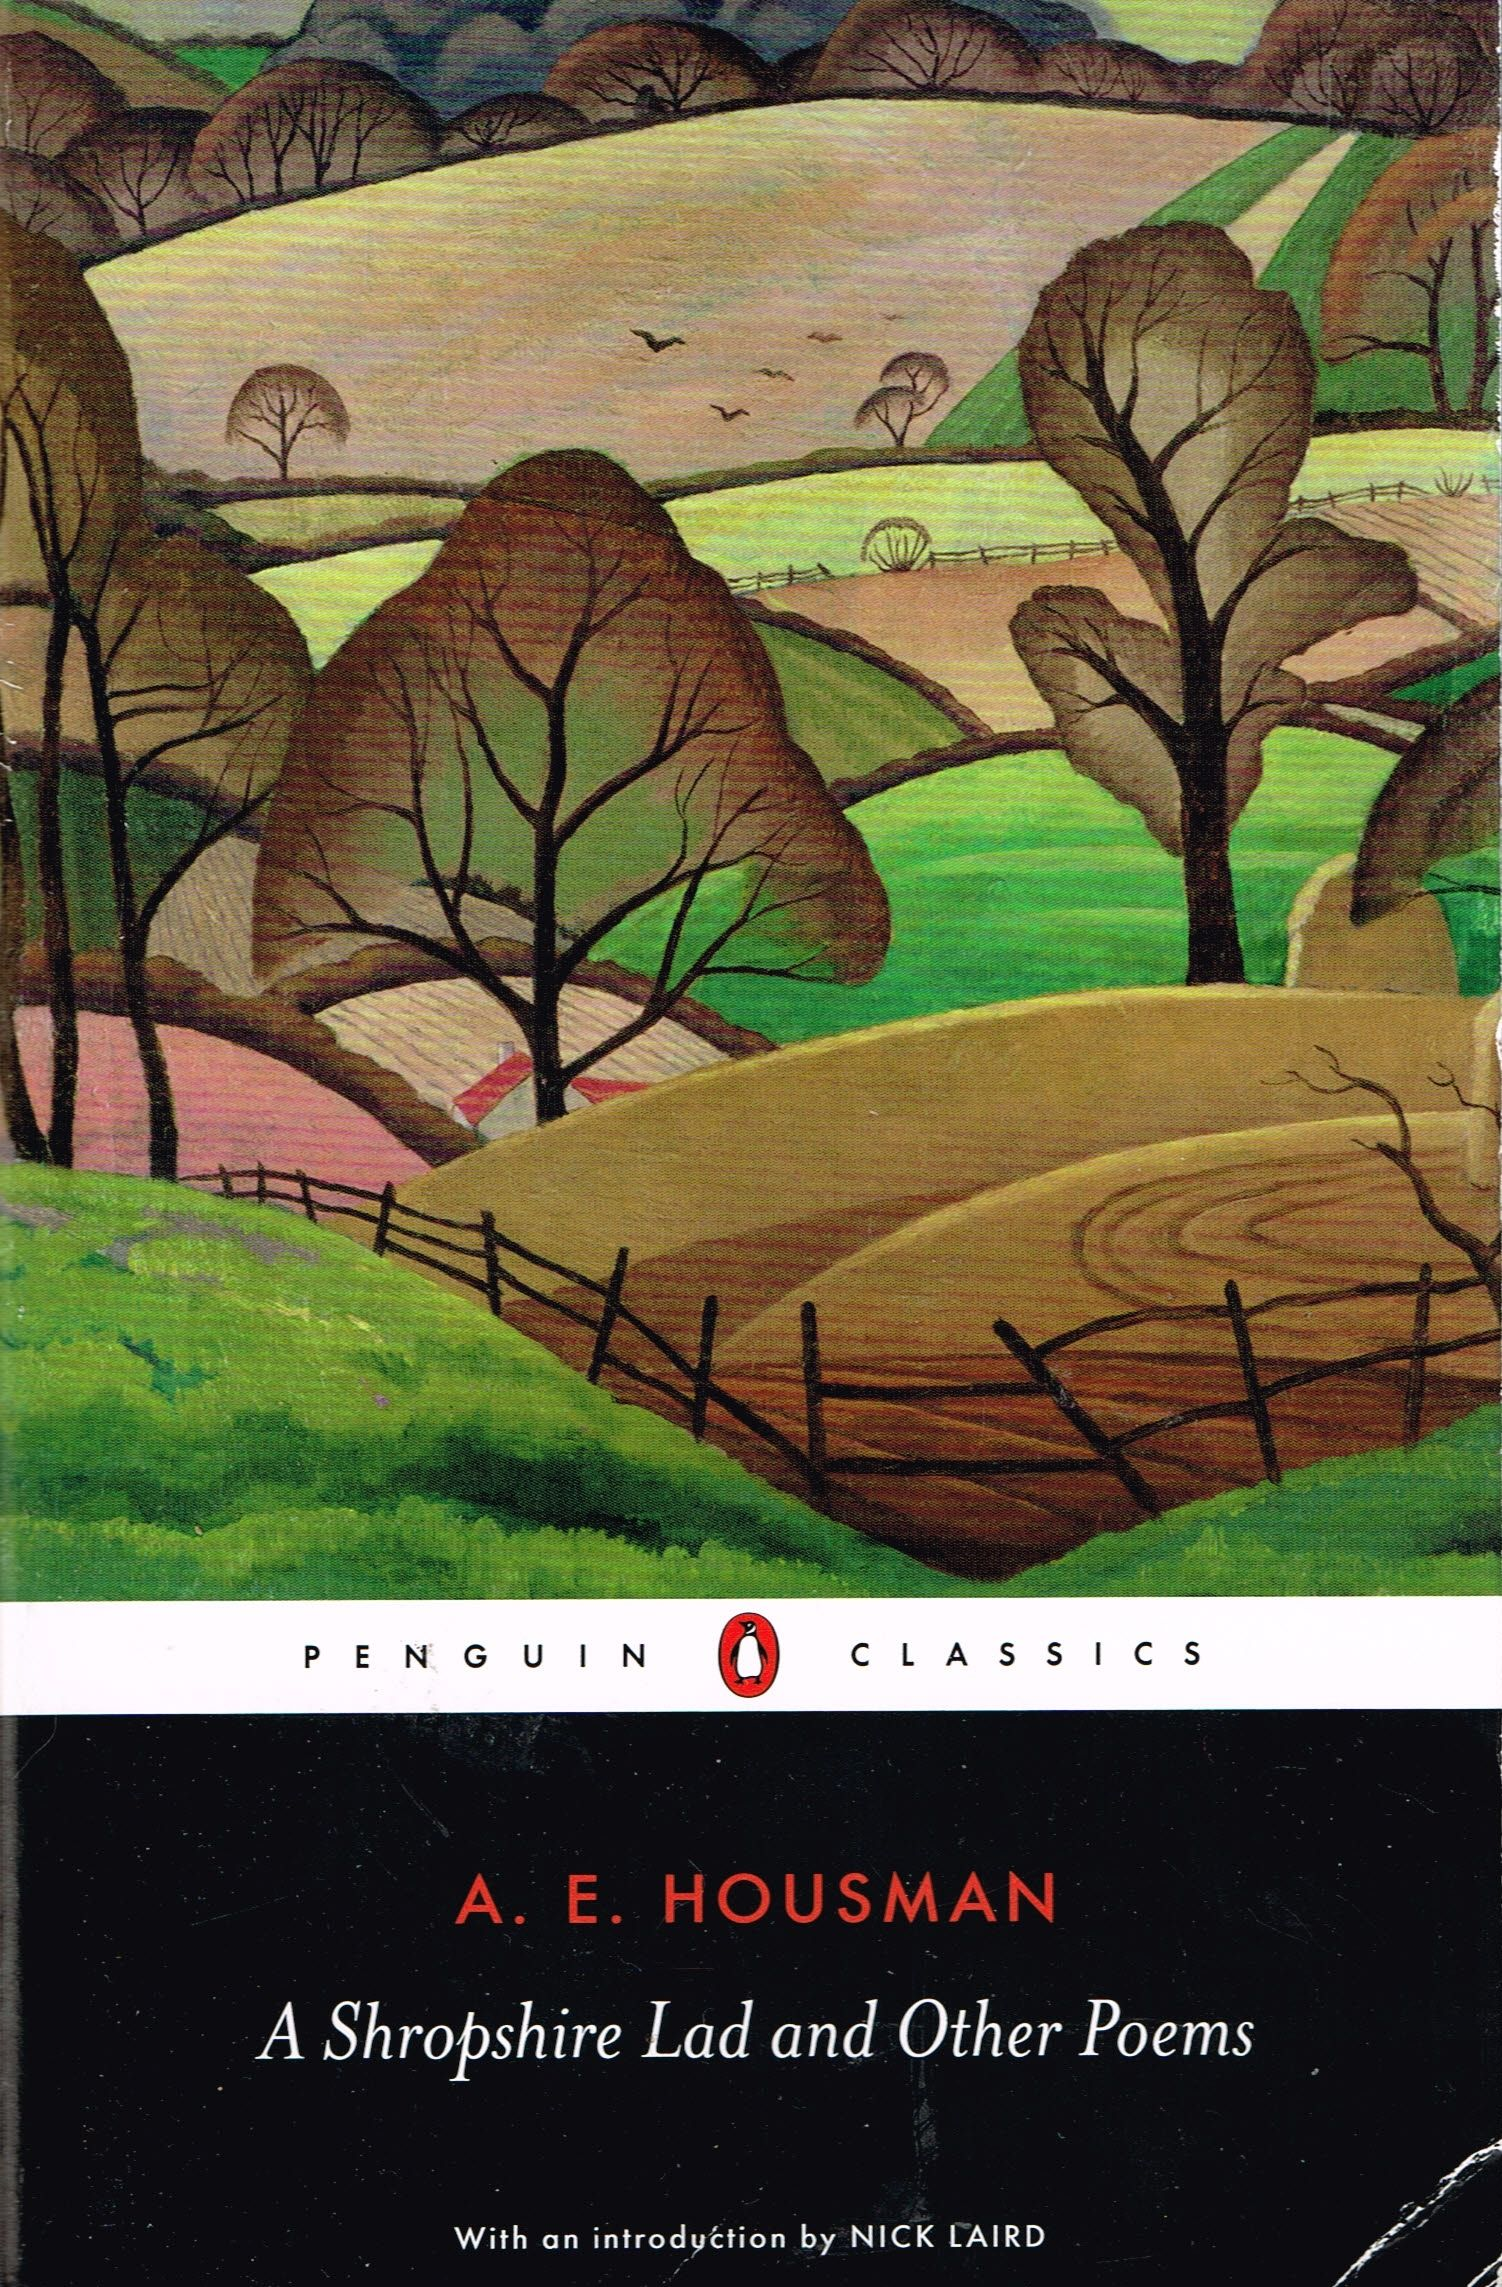 A Shropshire Lad & other Poems by AE Housman. Contains four collections, mostly written between 1880 & 1910, published 1896 to 1939. I enjoyed this collection, even though there are only a handful of great poems. Finished 9th Aug 2015, bedtime reading, first read mostly.